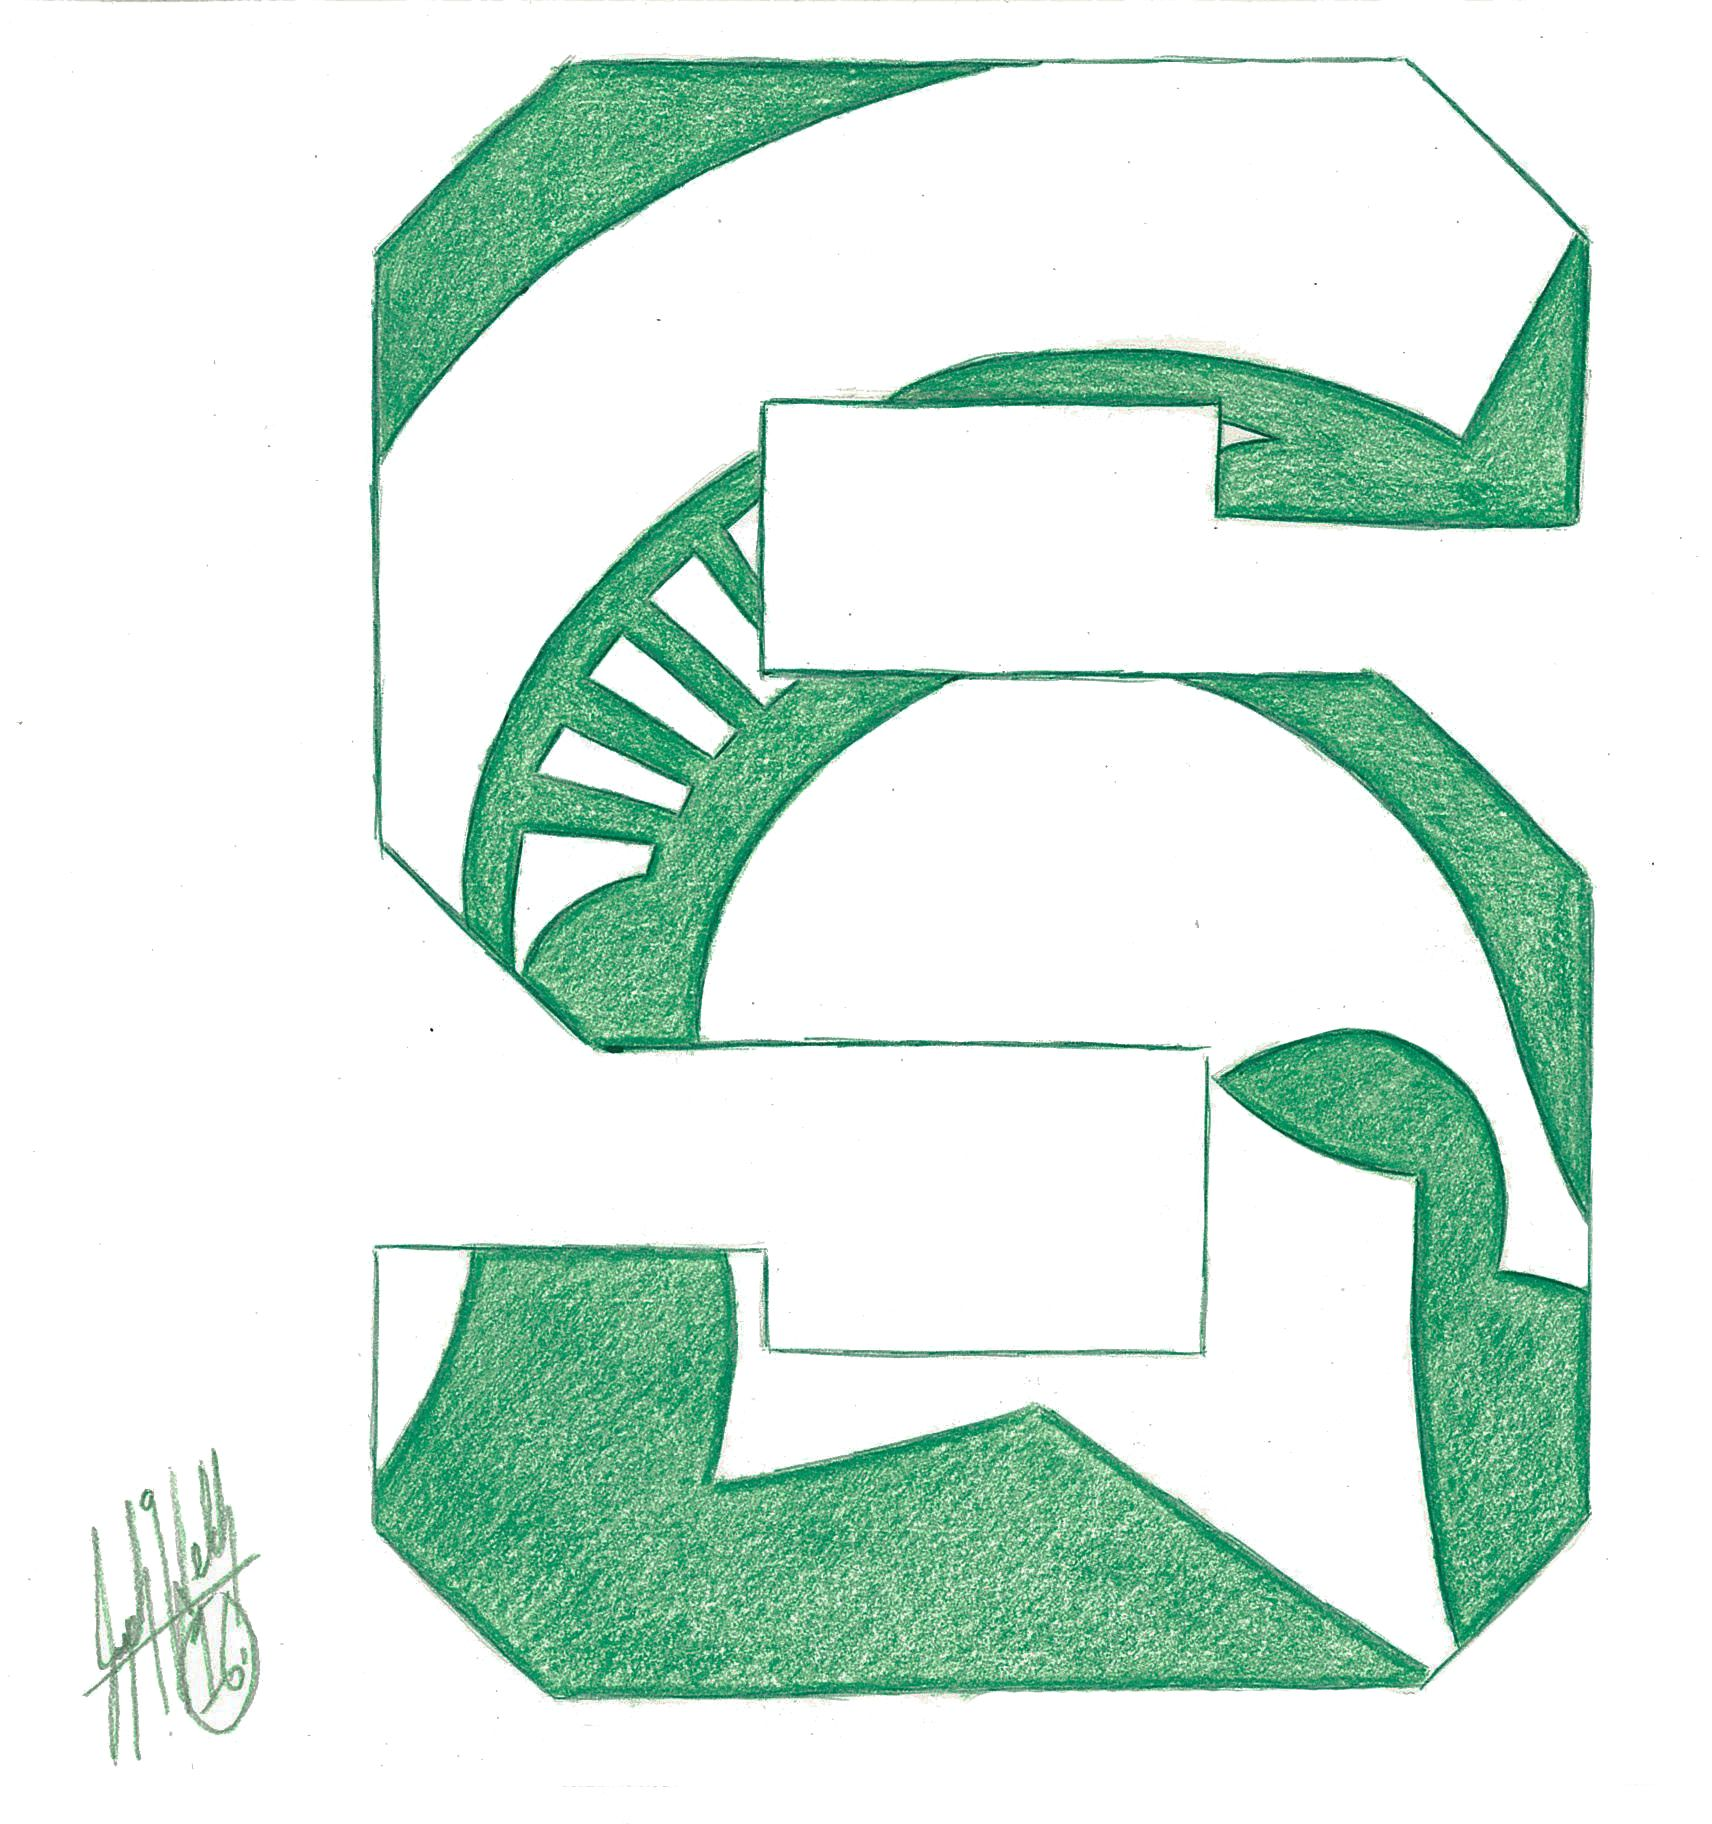 Michigan State Spartans Drawings Michigan State Spartans Art [ 1824 x 1712 Pixel ]